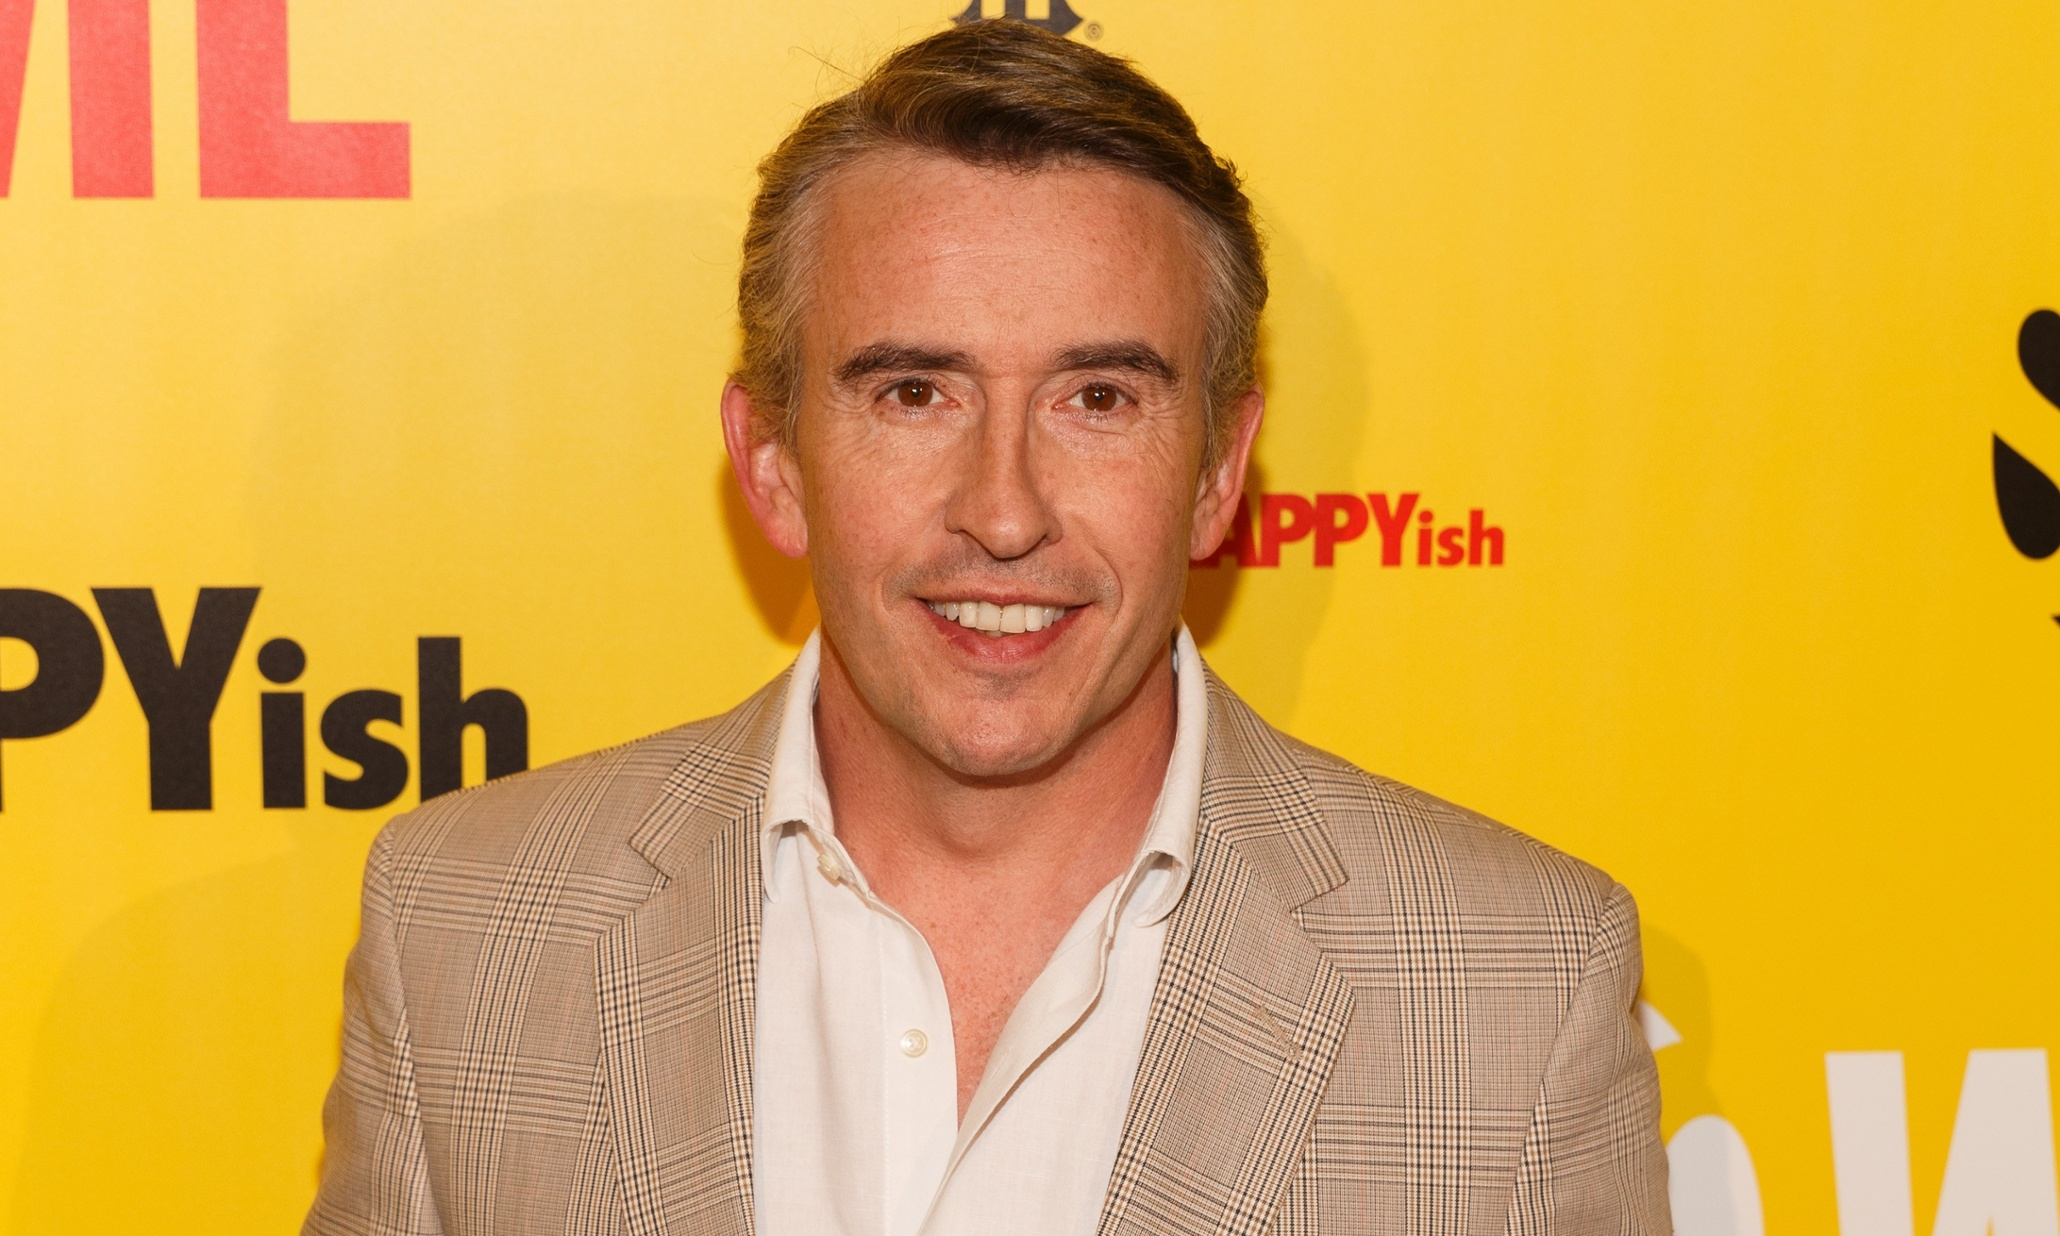 The Alan Partridge star and Oscar-nominated screenwriter has signed on for a role in South African drama Shepherds and Butchers